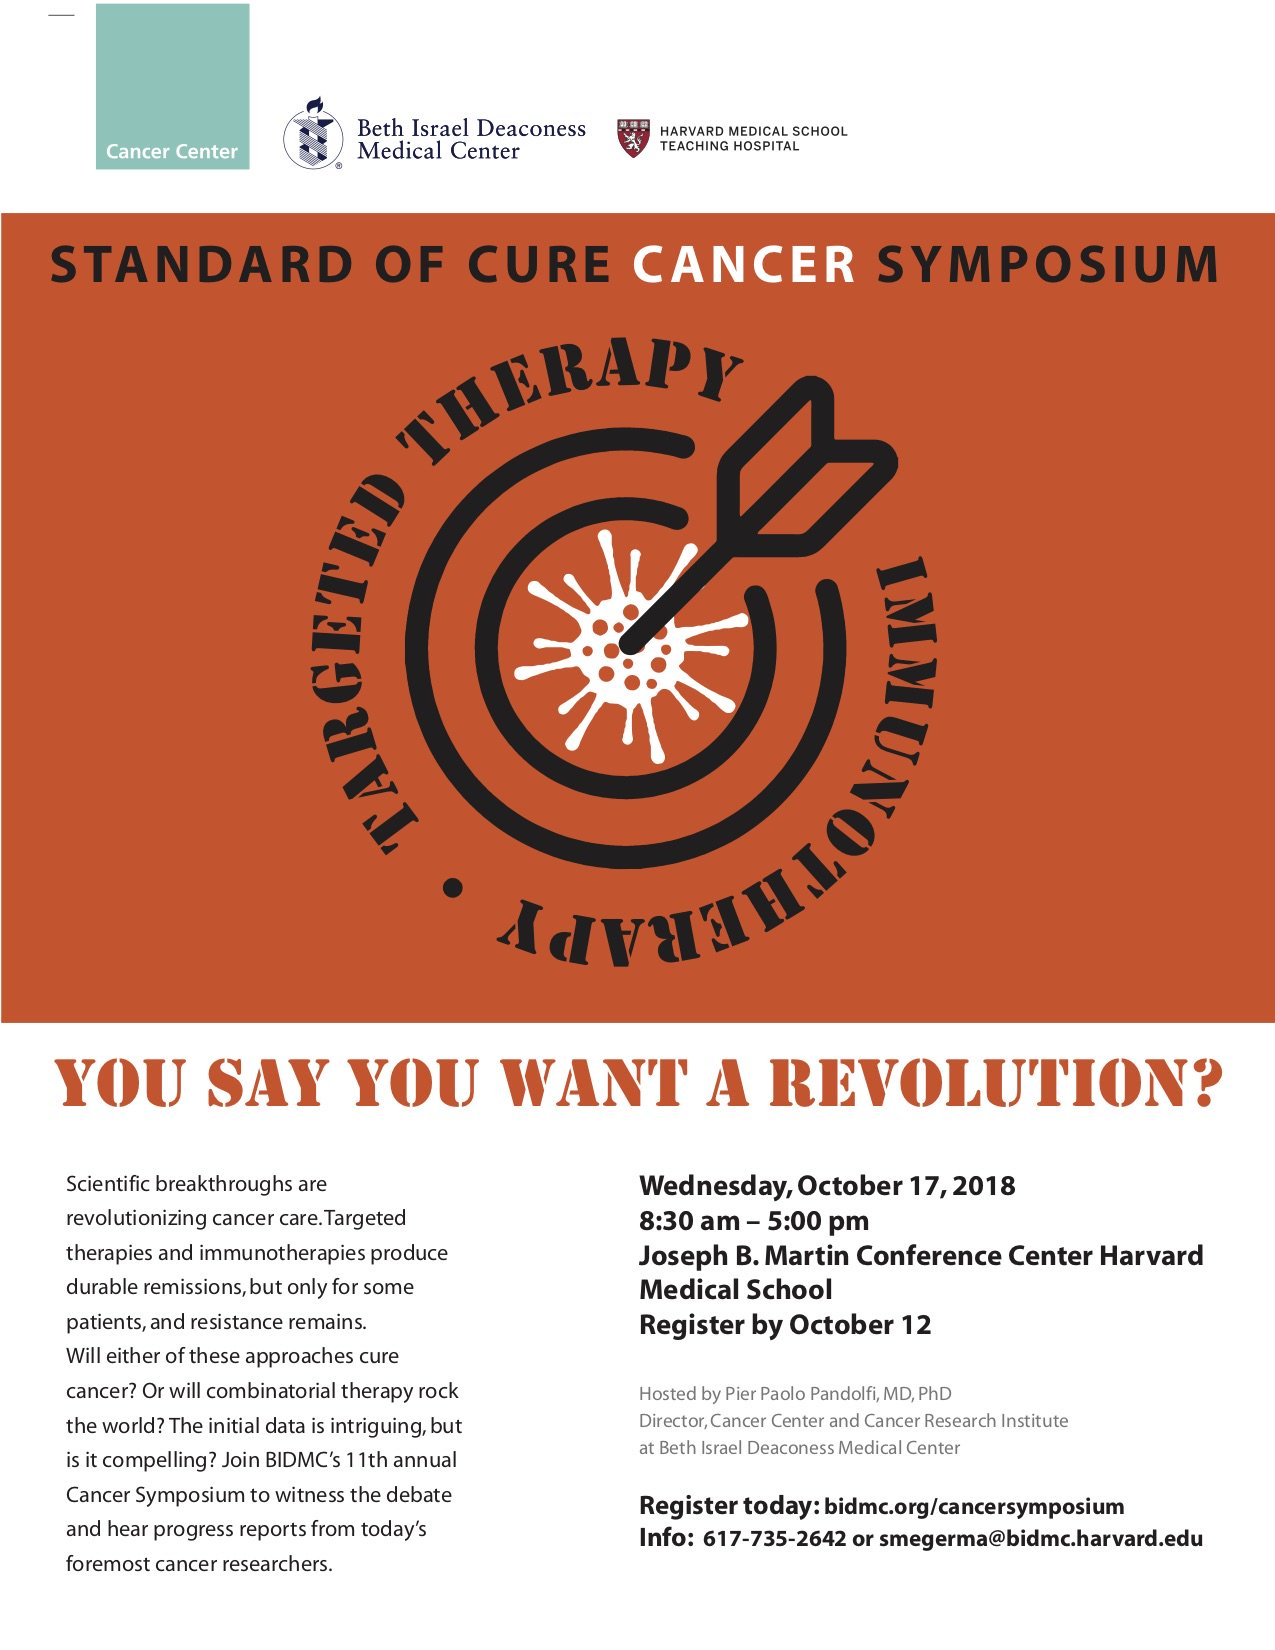 Frank J Slack Phd On Twitter Standard Of Cure Cancer Symposium